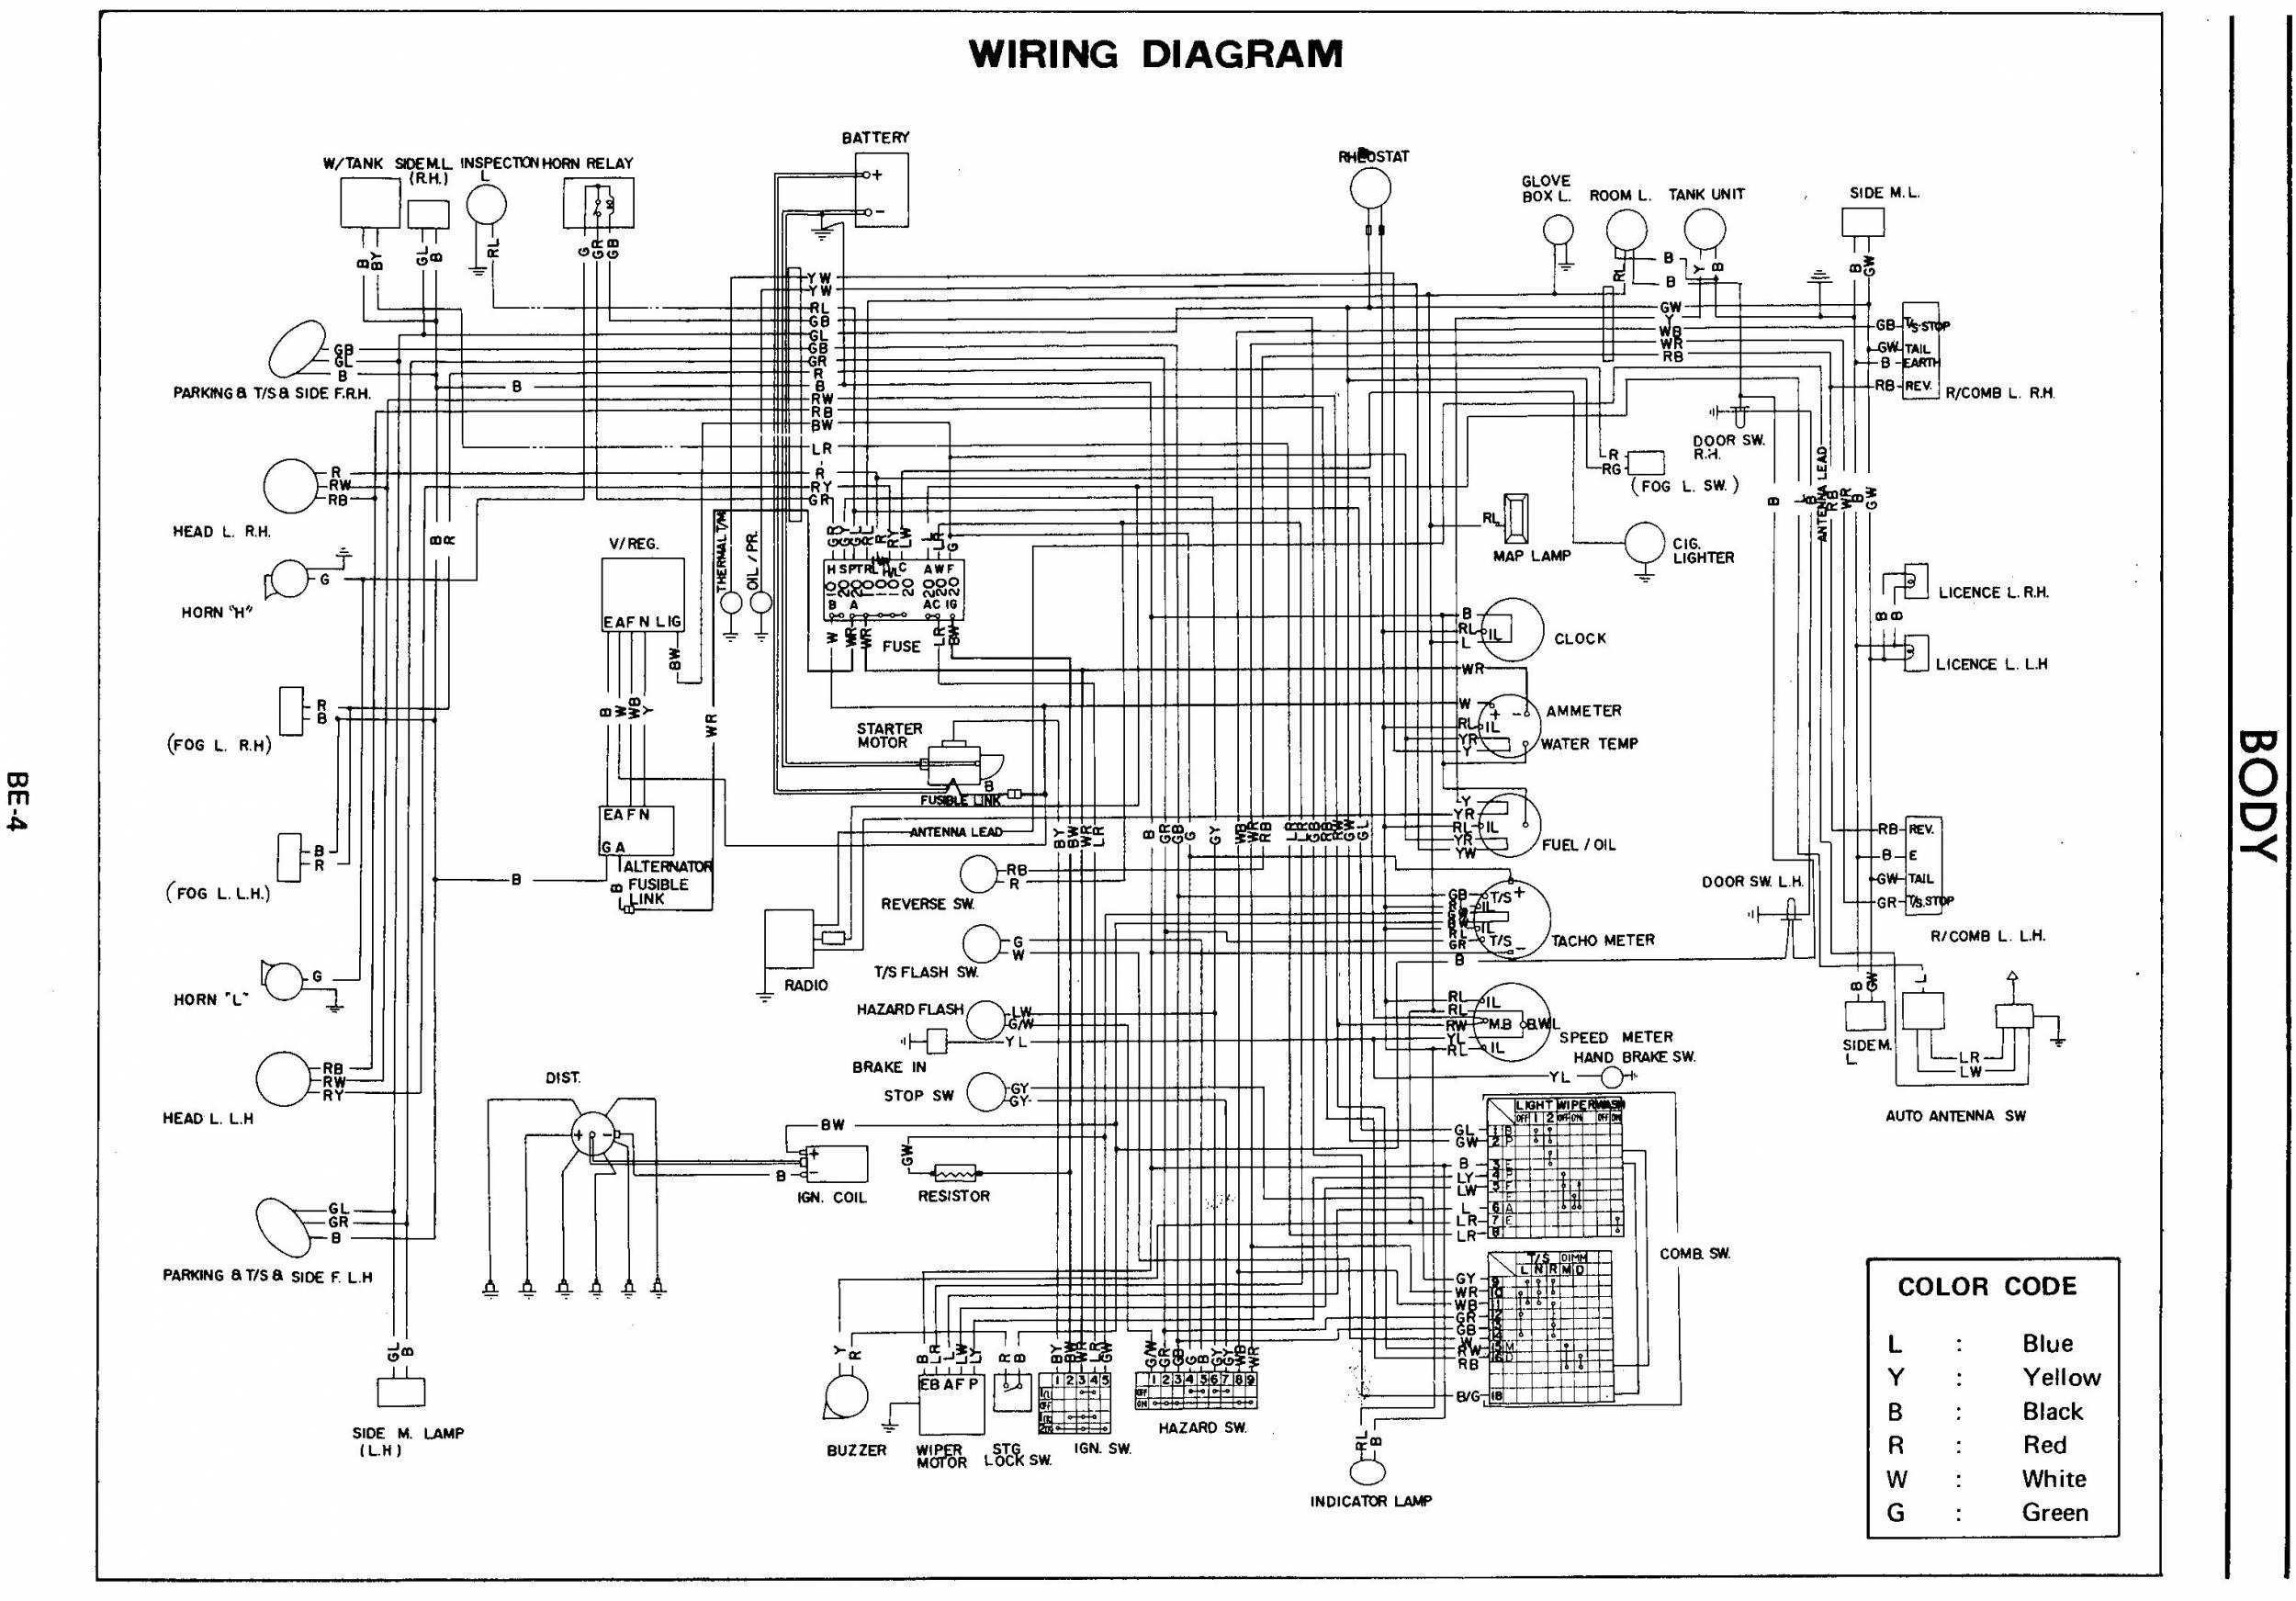 mercedes sprinter wiring diagram pdf Download-S13 Horn Wiring Diagram Best Mercedes Benz W203 Wiring Diagram 2-q